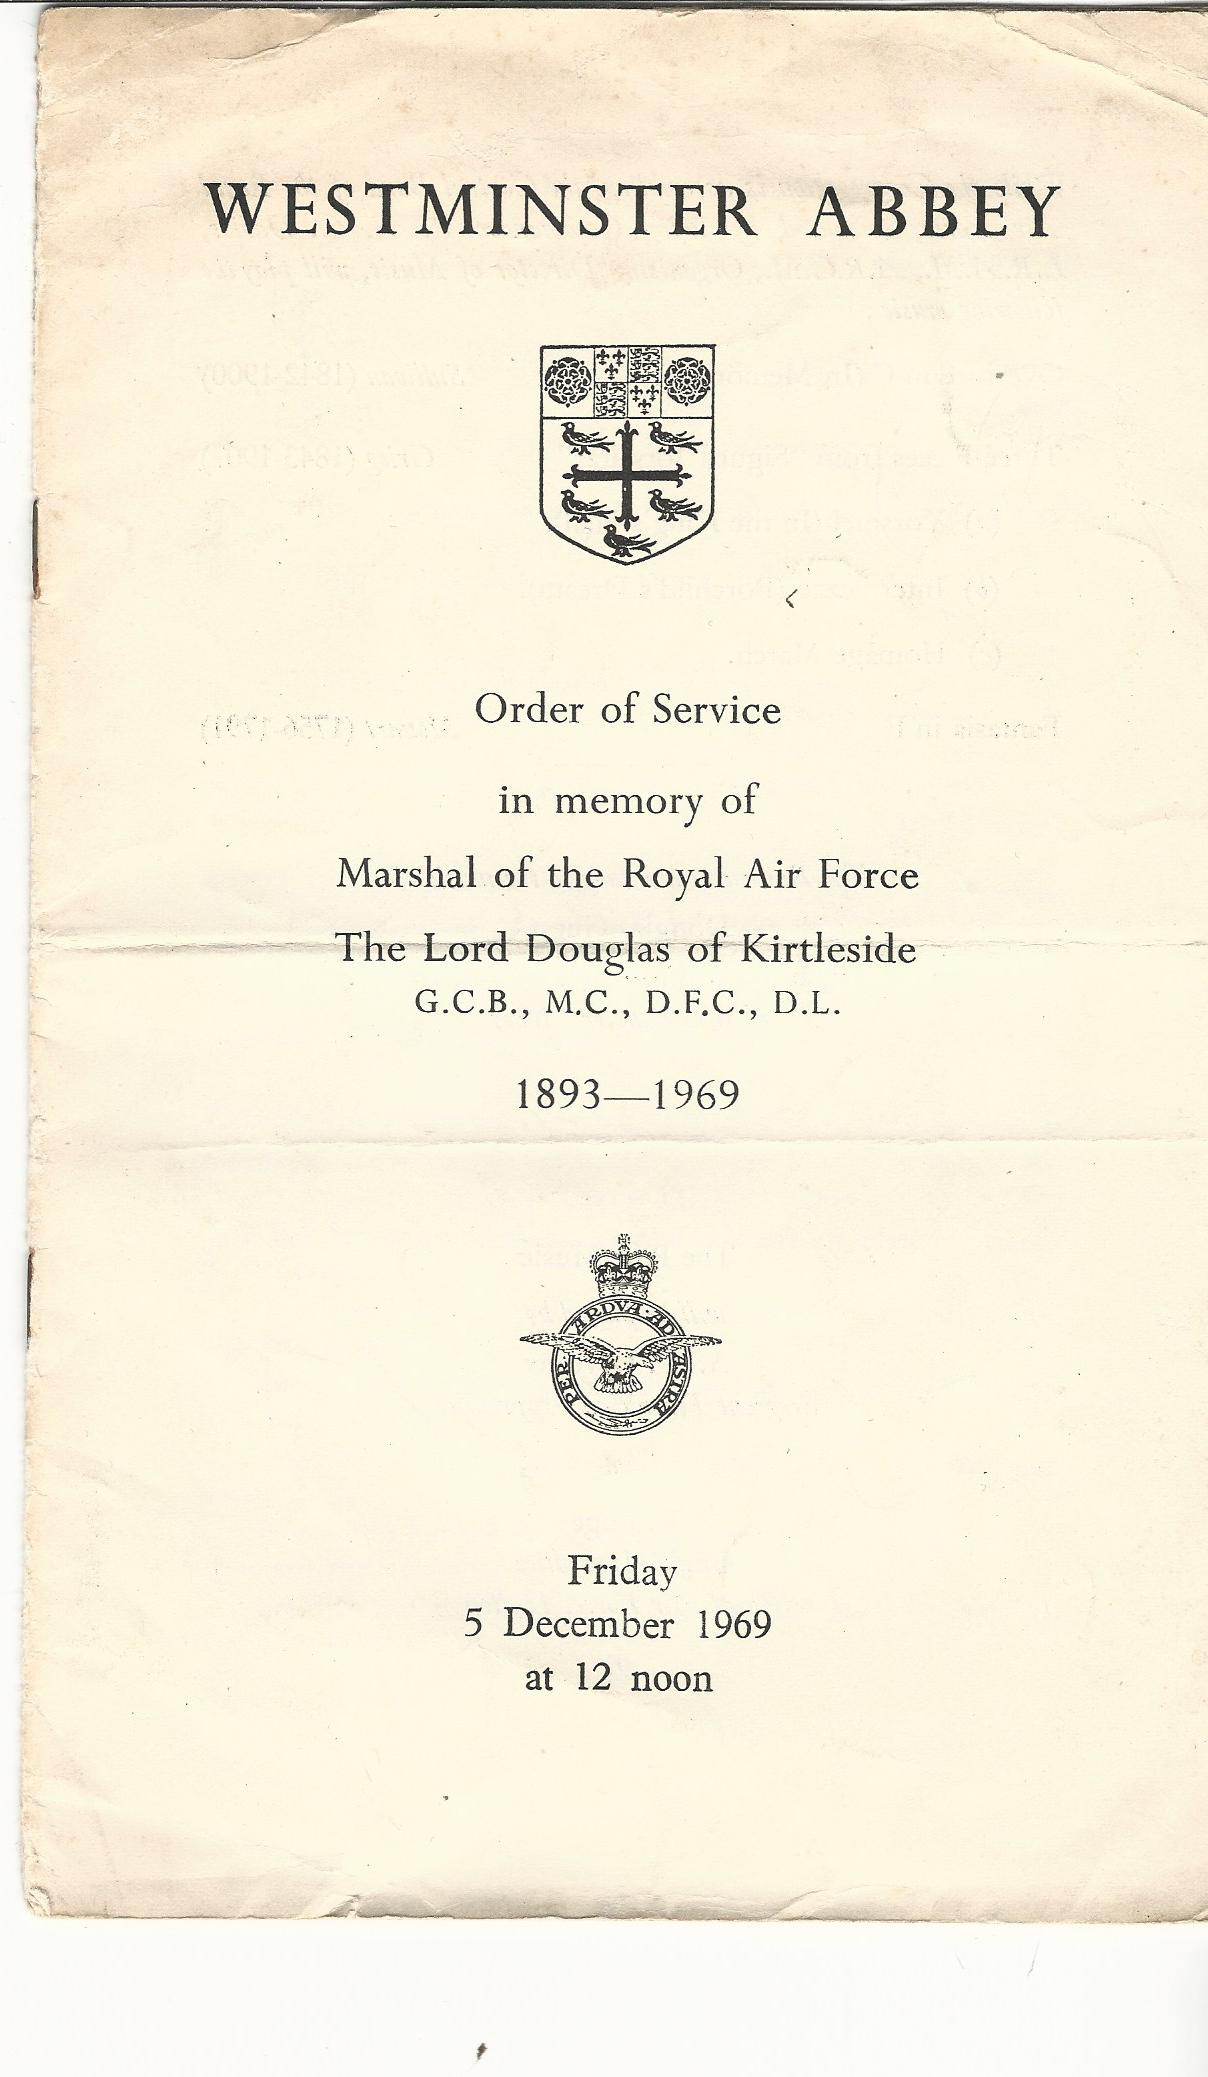 Image for Westminster Abbey: Order of Service in Memory of Marshal of the Royal Air Force The Lord Douglas of Kirtleside 1893 - 1969. Friday 5 December 1969.